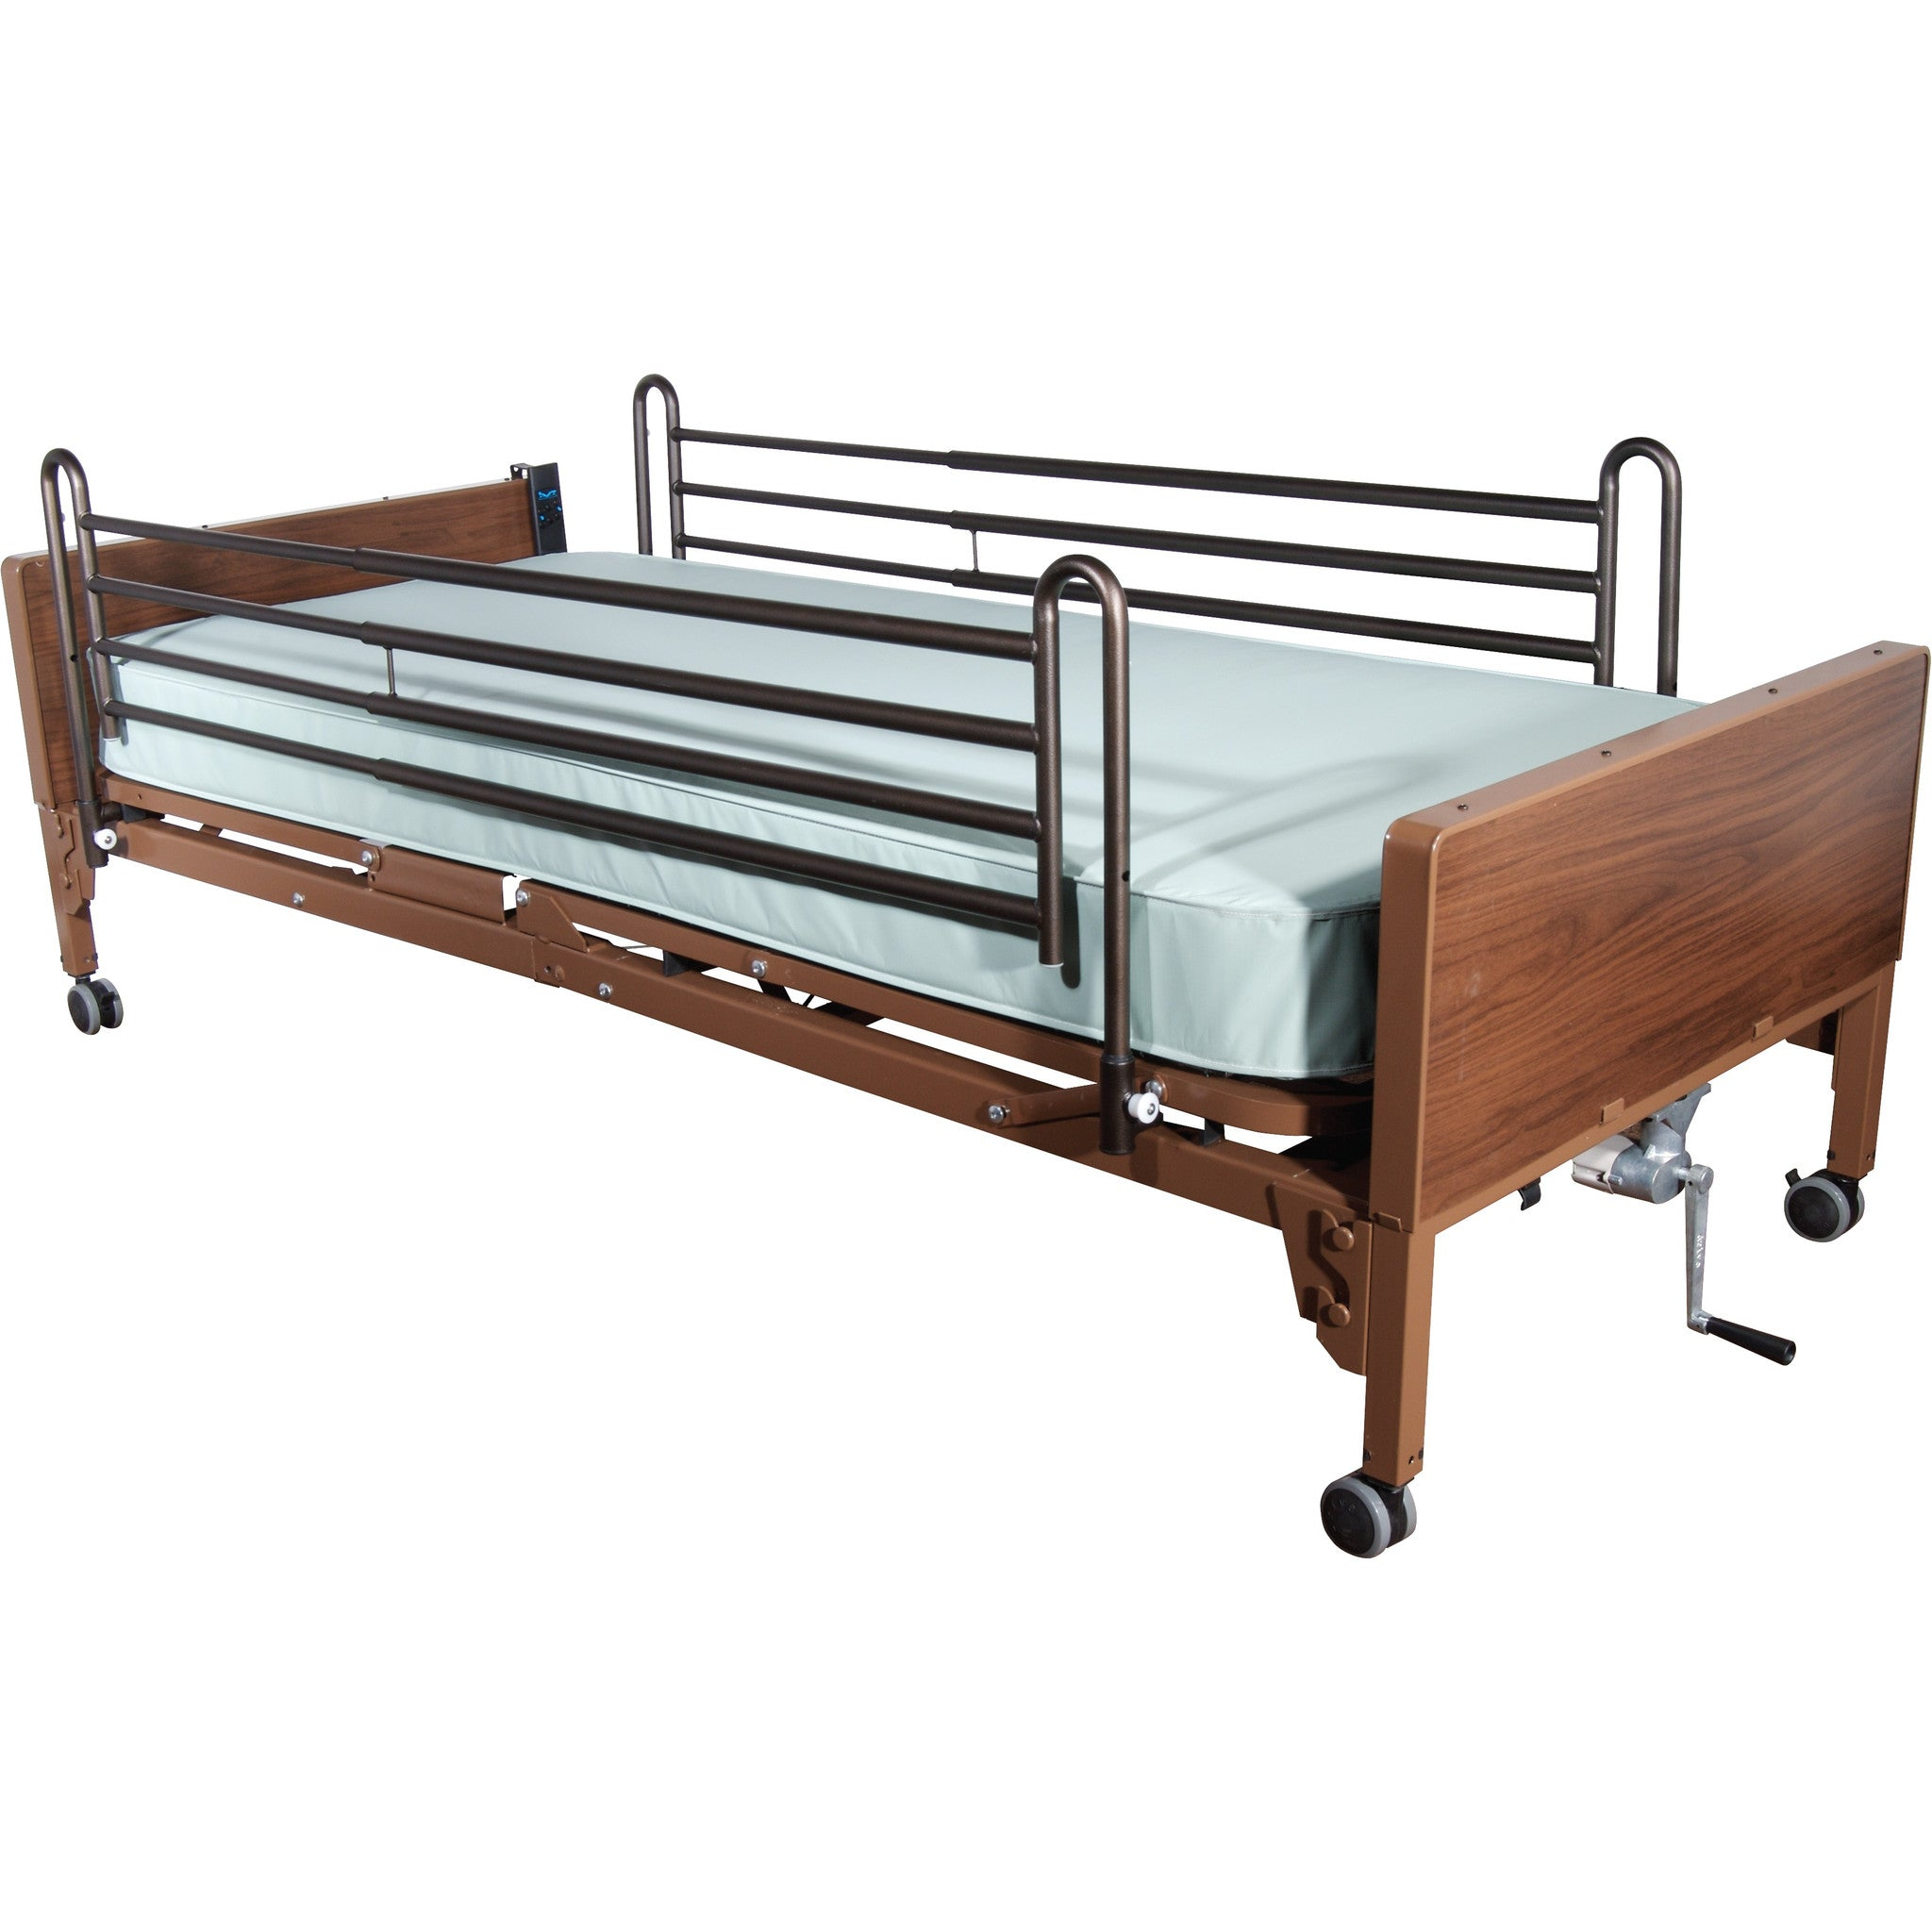 Full Length Hospital Side Bed Rail By Drive Medical Csa